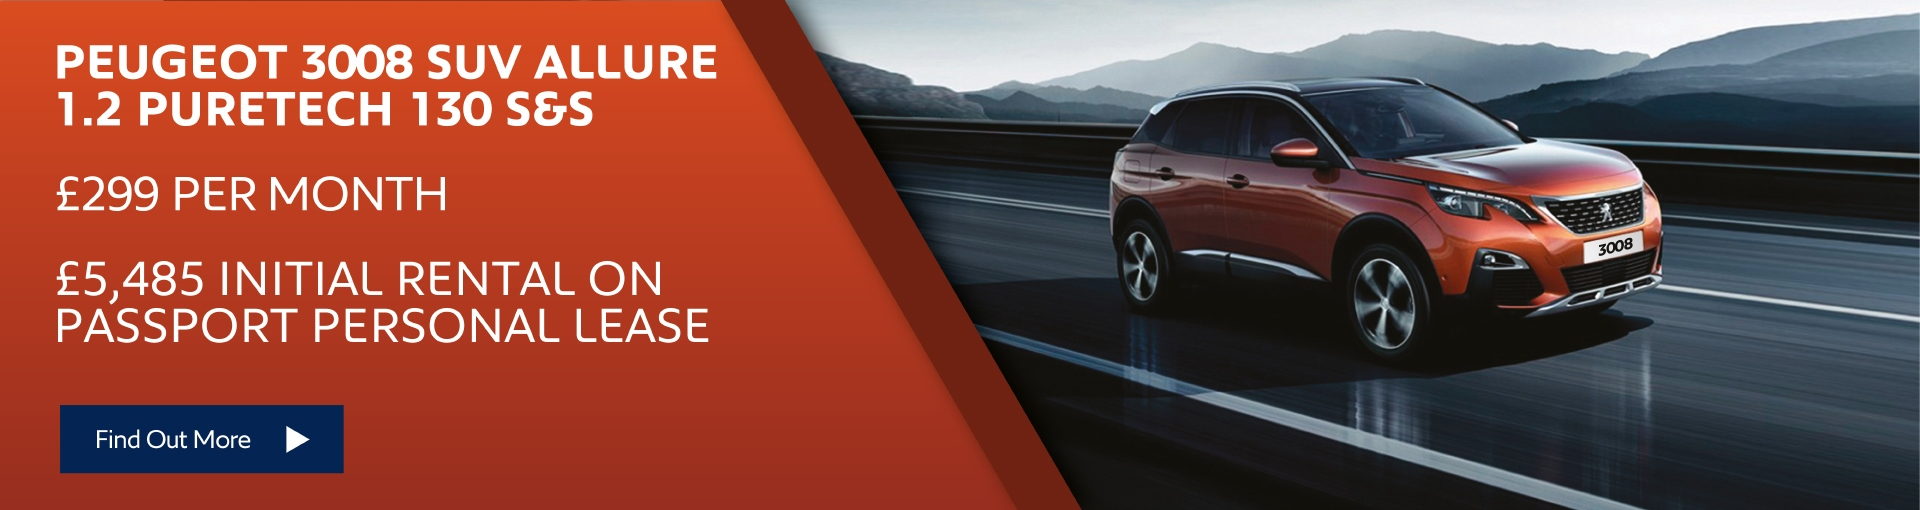 Peugeot 3008 SUV £299 per month